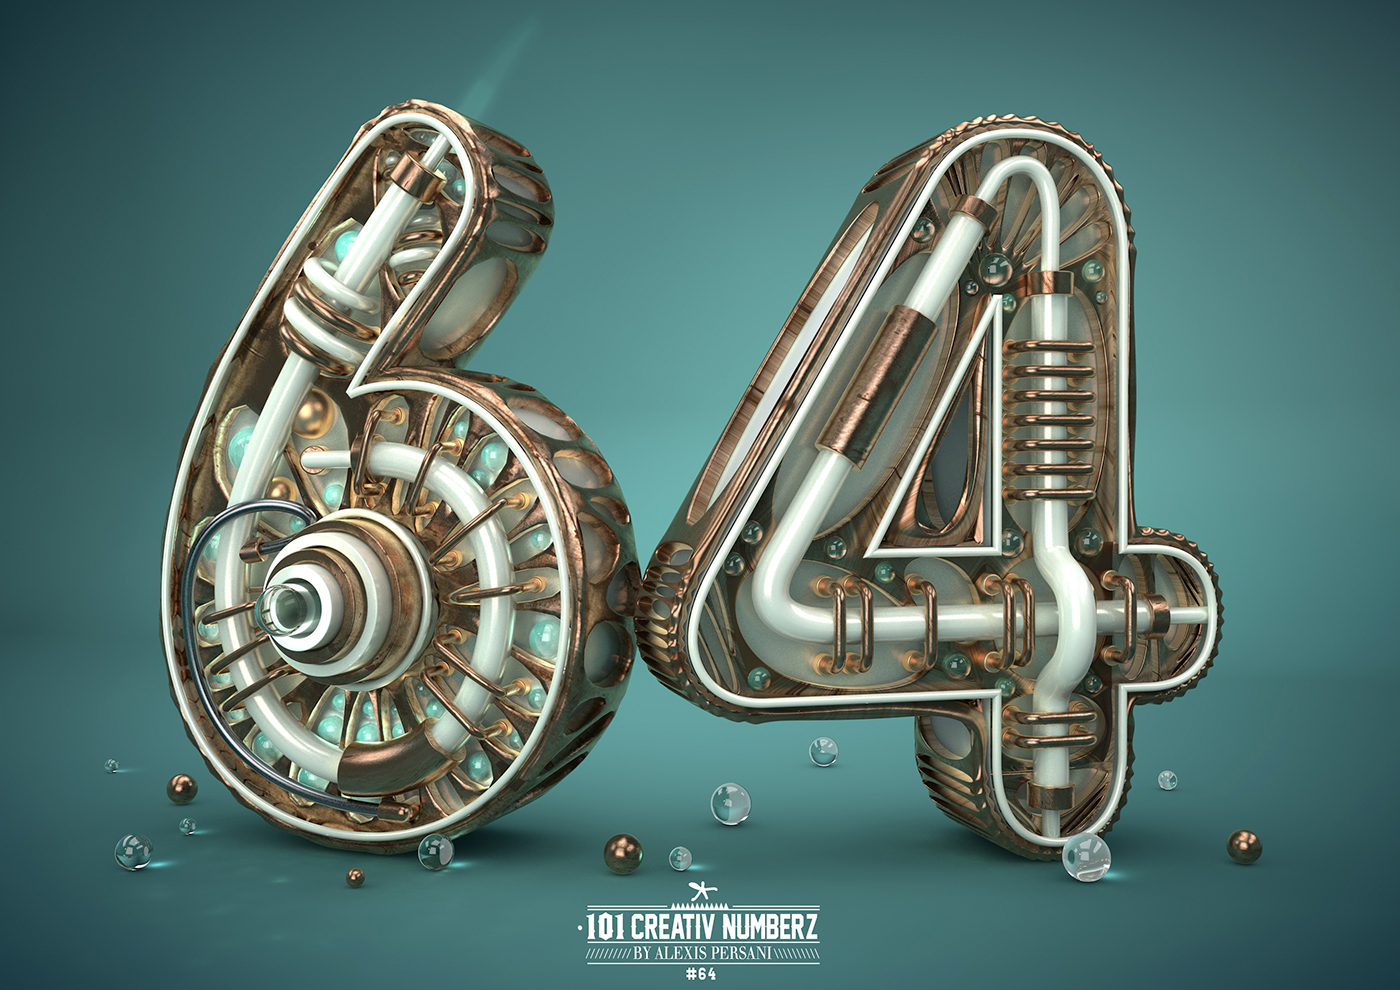 Outstanding 101 Creative Numbers Typography by Alexis Persani 59